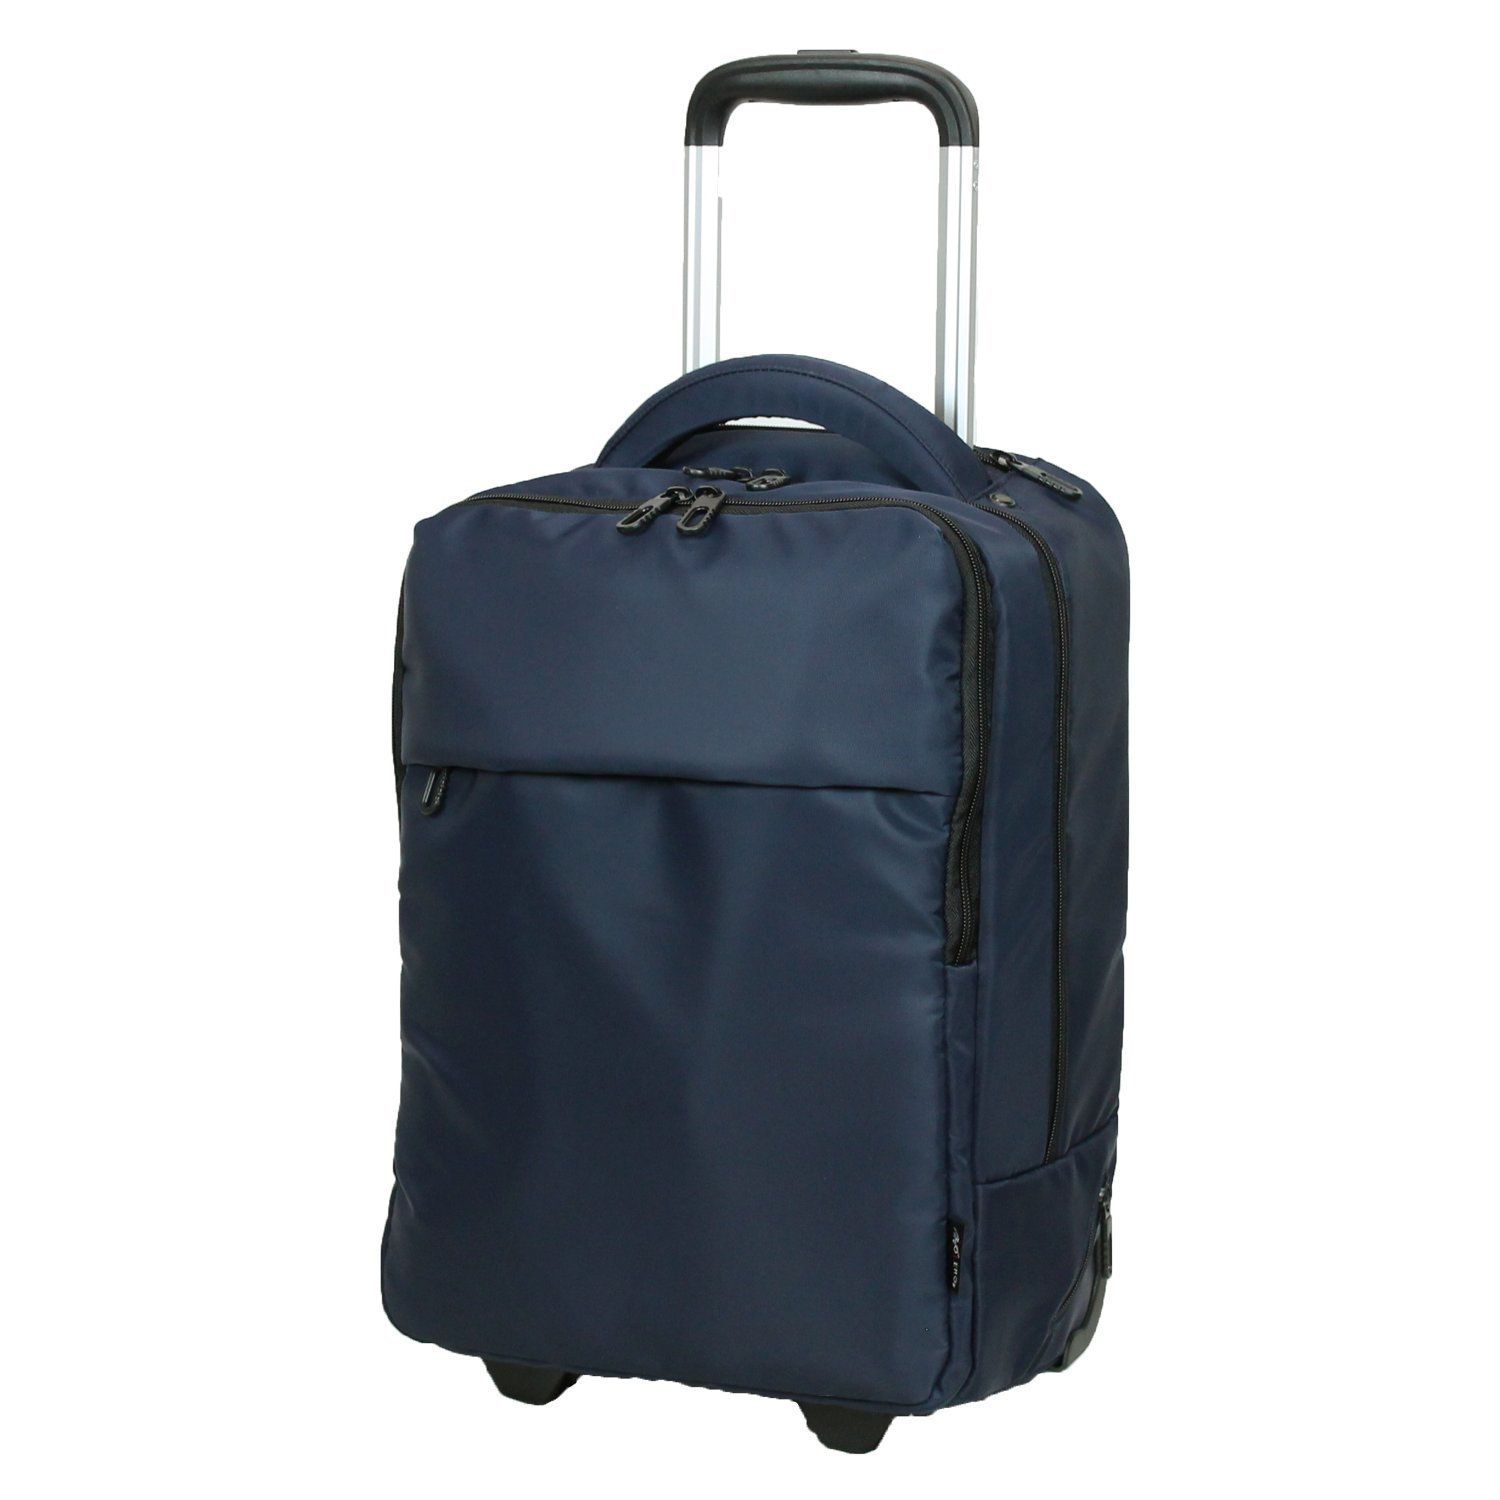 81-71005-50 Nylon Navy 【COLOCOLO by MOIERG】Carry On Rolling Backpack with Wheels S Nylon